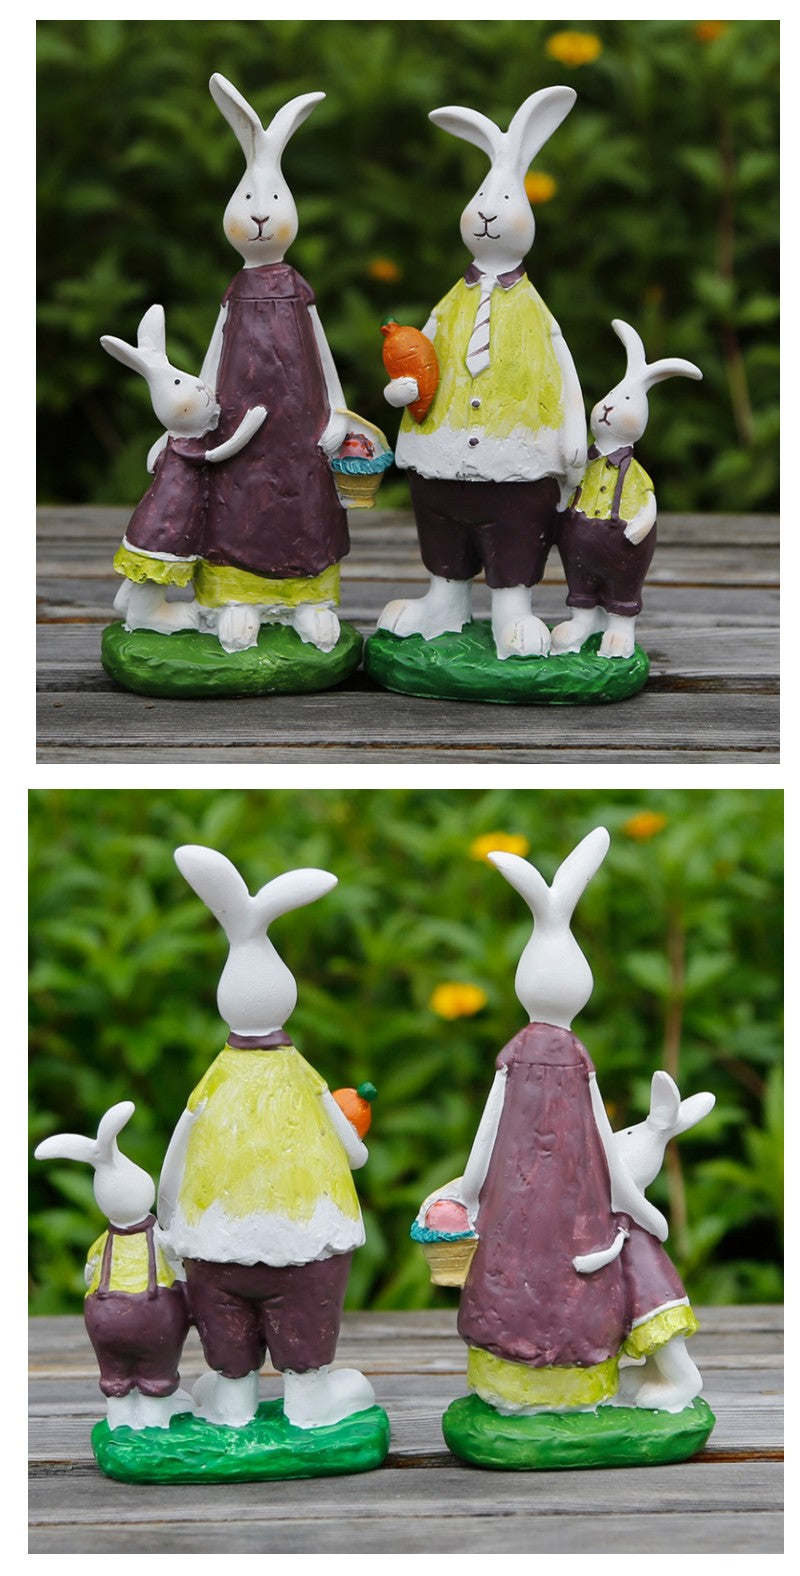 Happy Rabbit Family Statue, Lovely Rabbit Statues, Resin Statue for Garden Ornament, Villa Courtyard Decor, Outdoor Decoration, Garden Ideas